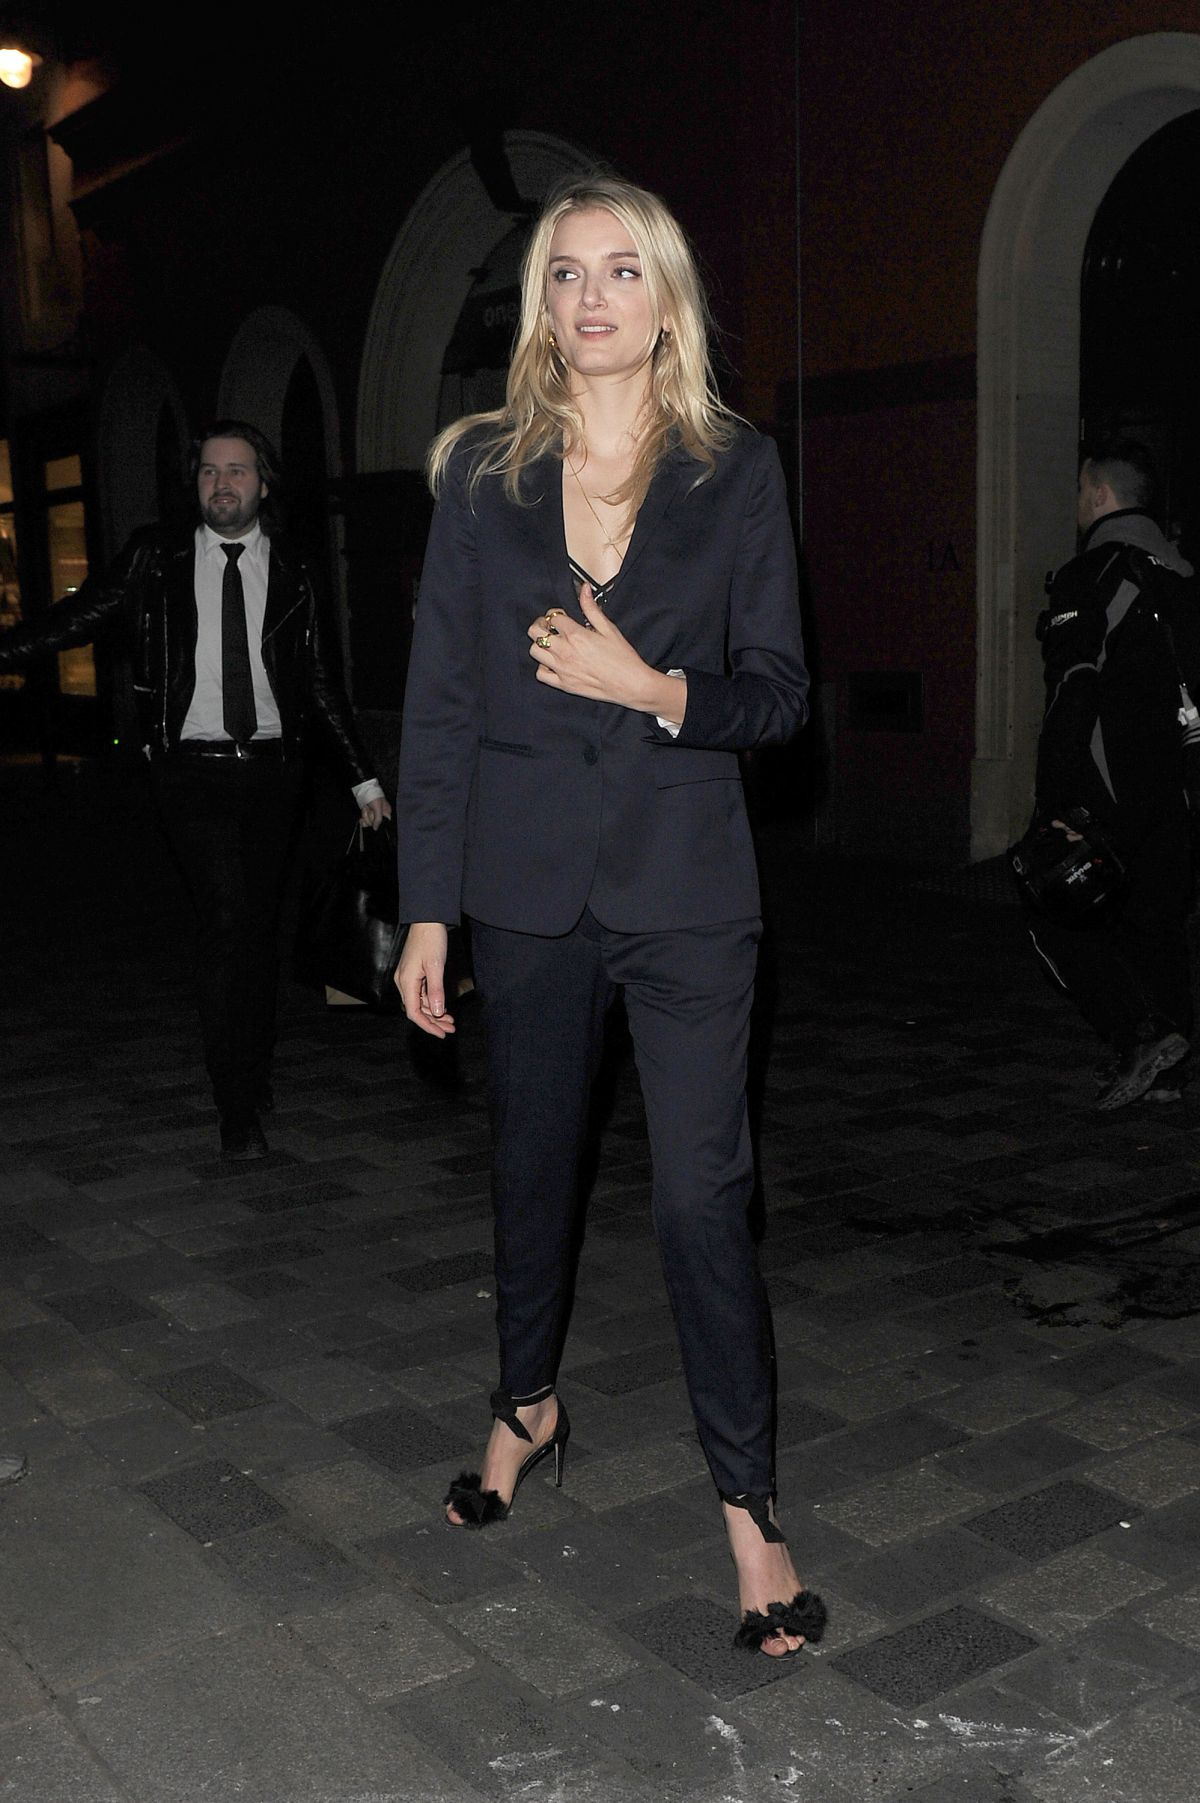 LILY DONALDSON Arrives at Pre-bafta Party at Little House Restaurant in London 02/12/2016